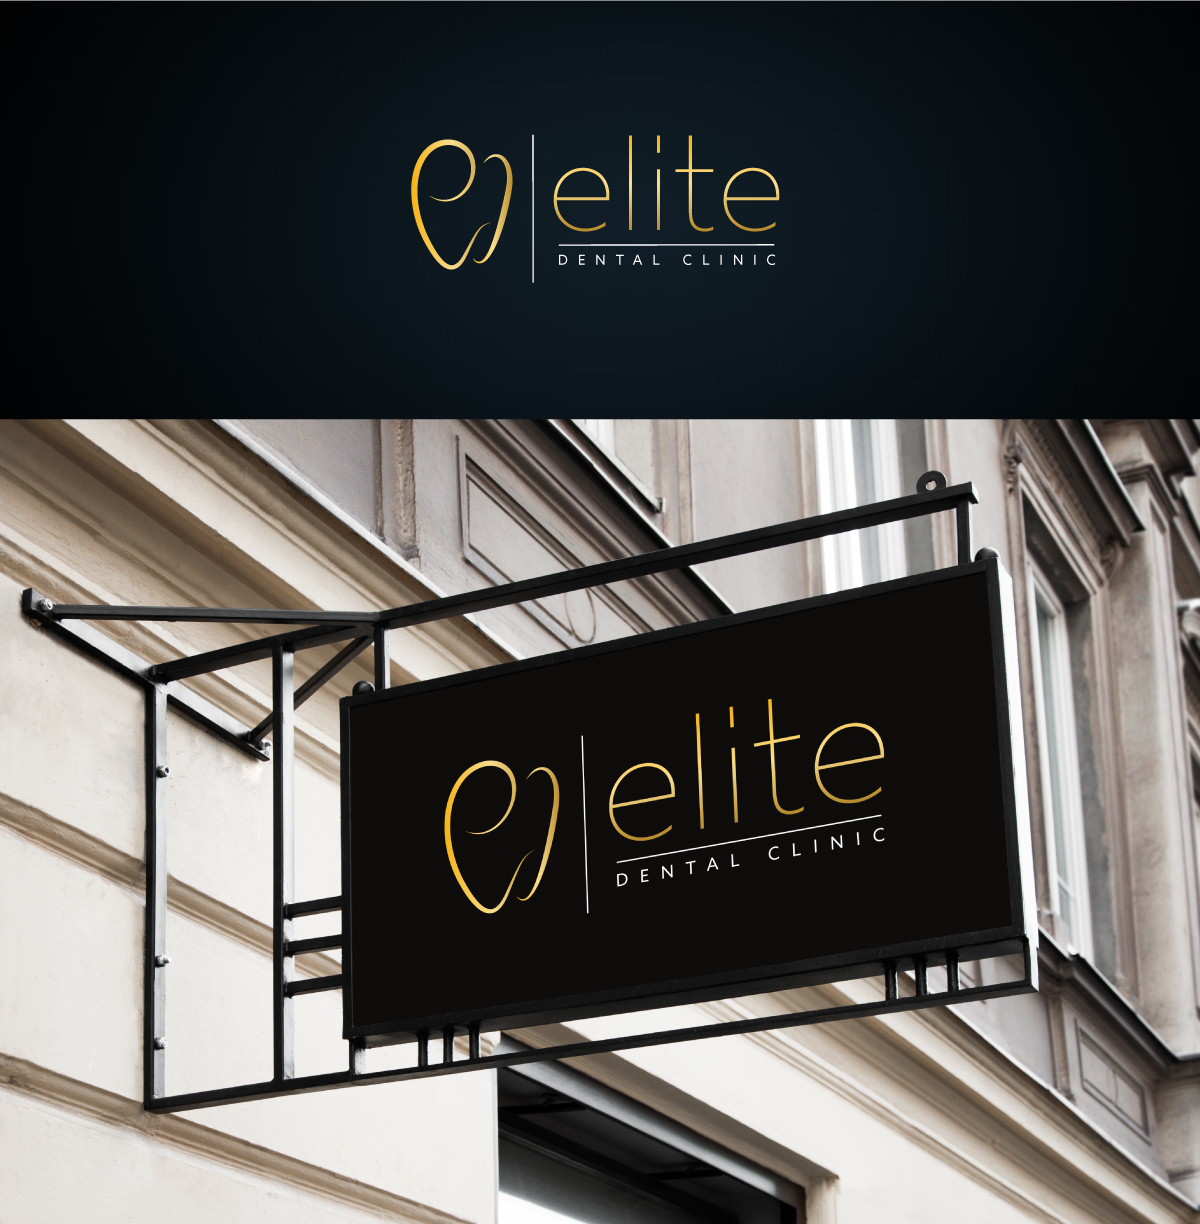 Logo Design for an Elite Dental Clinic by ultramarin